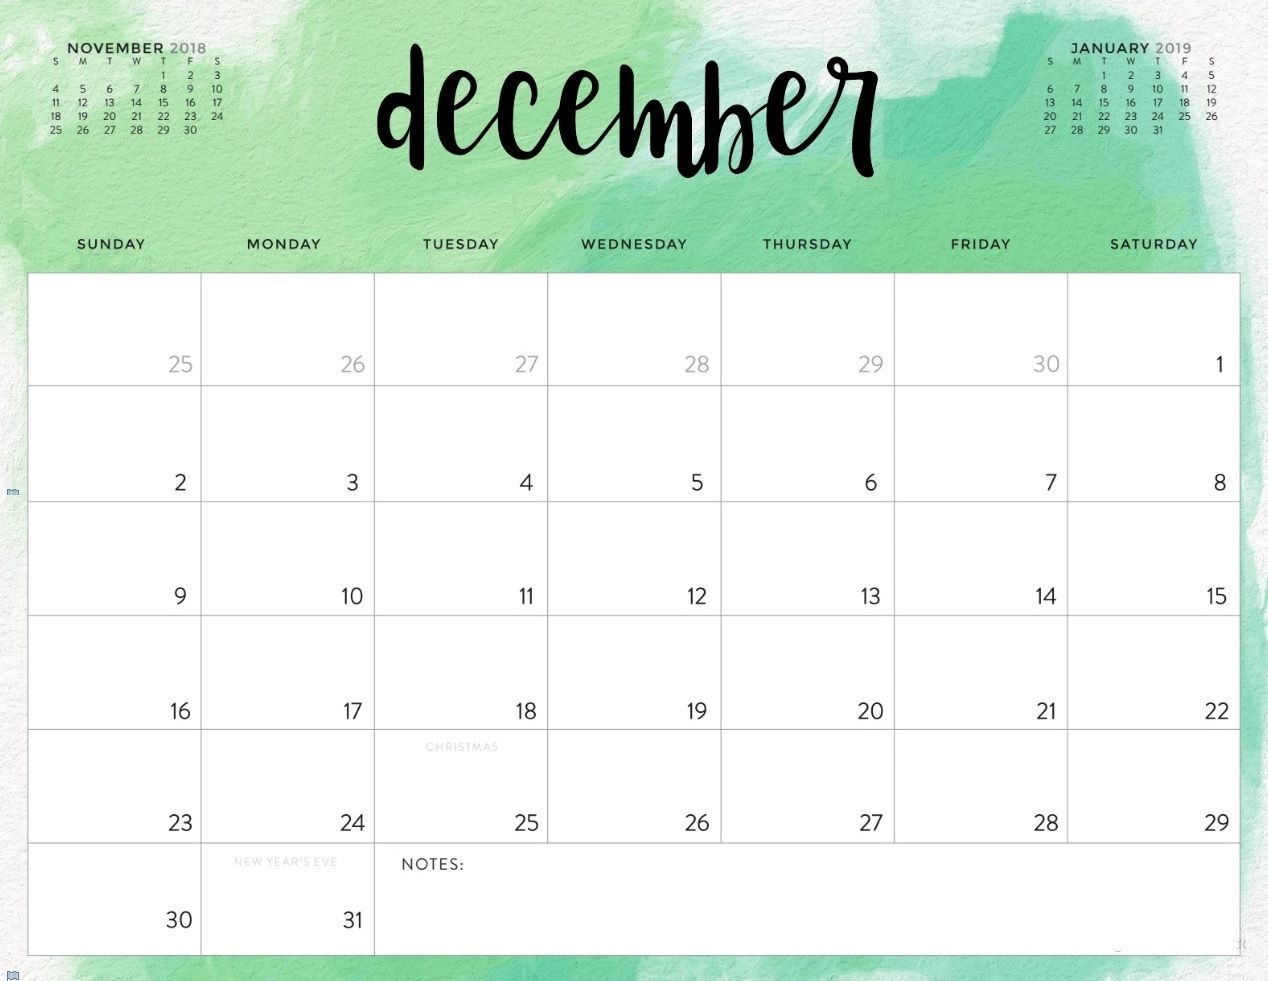 Custom Calendar For Business - Marry Steven - Medium